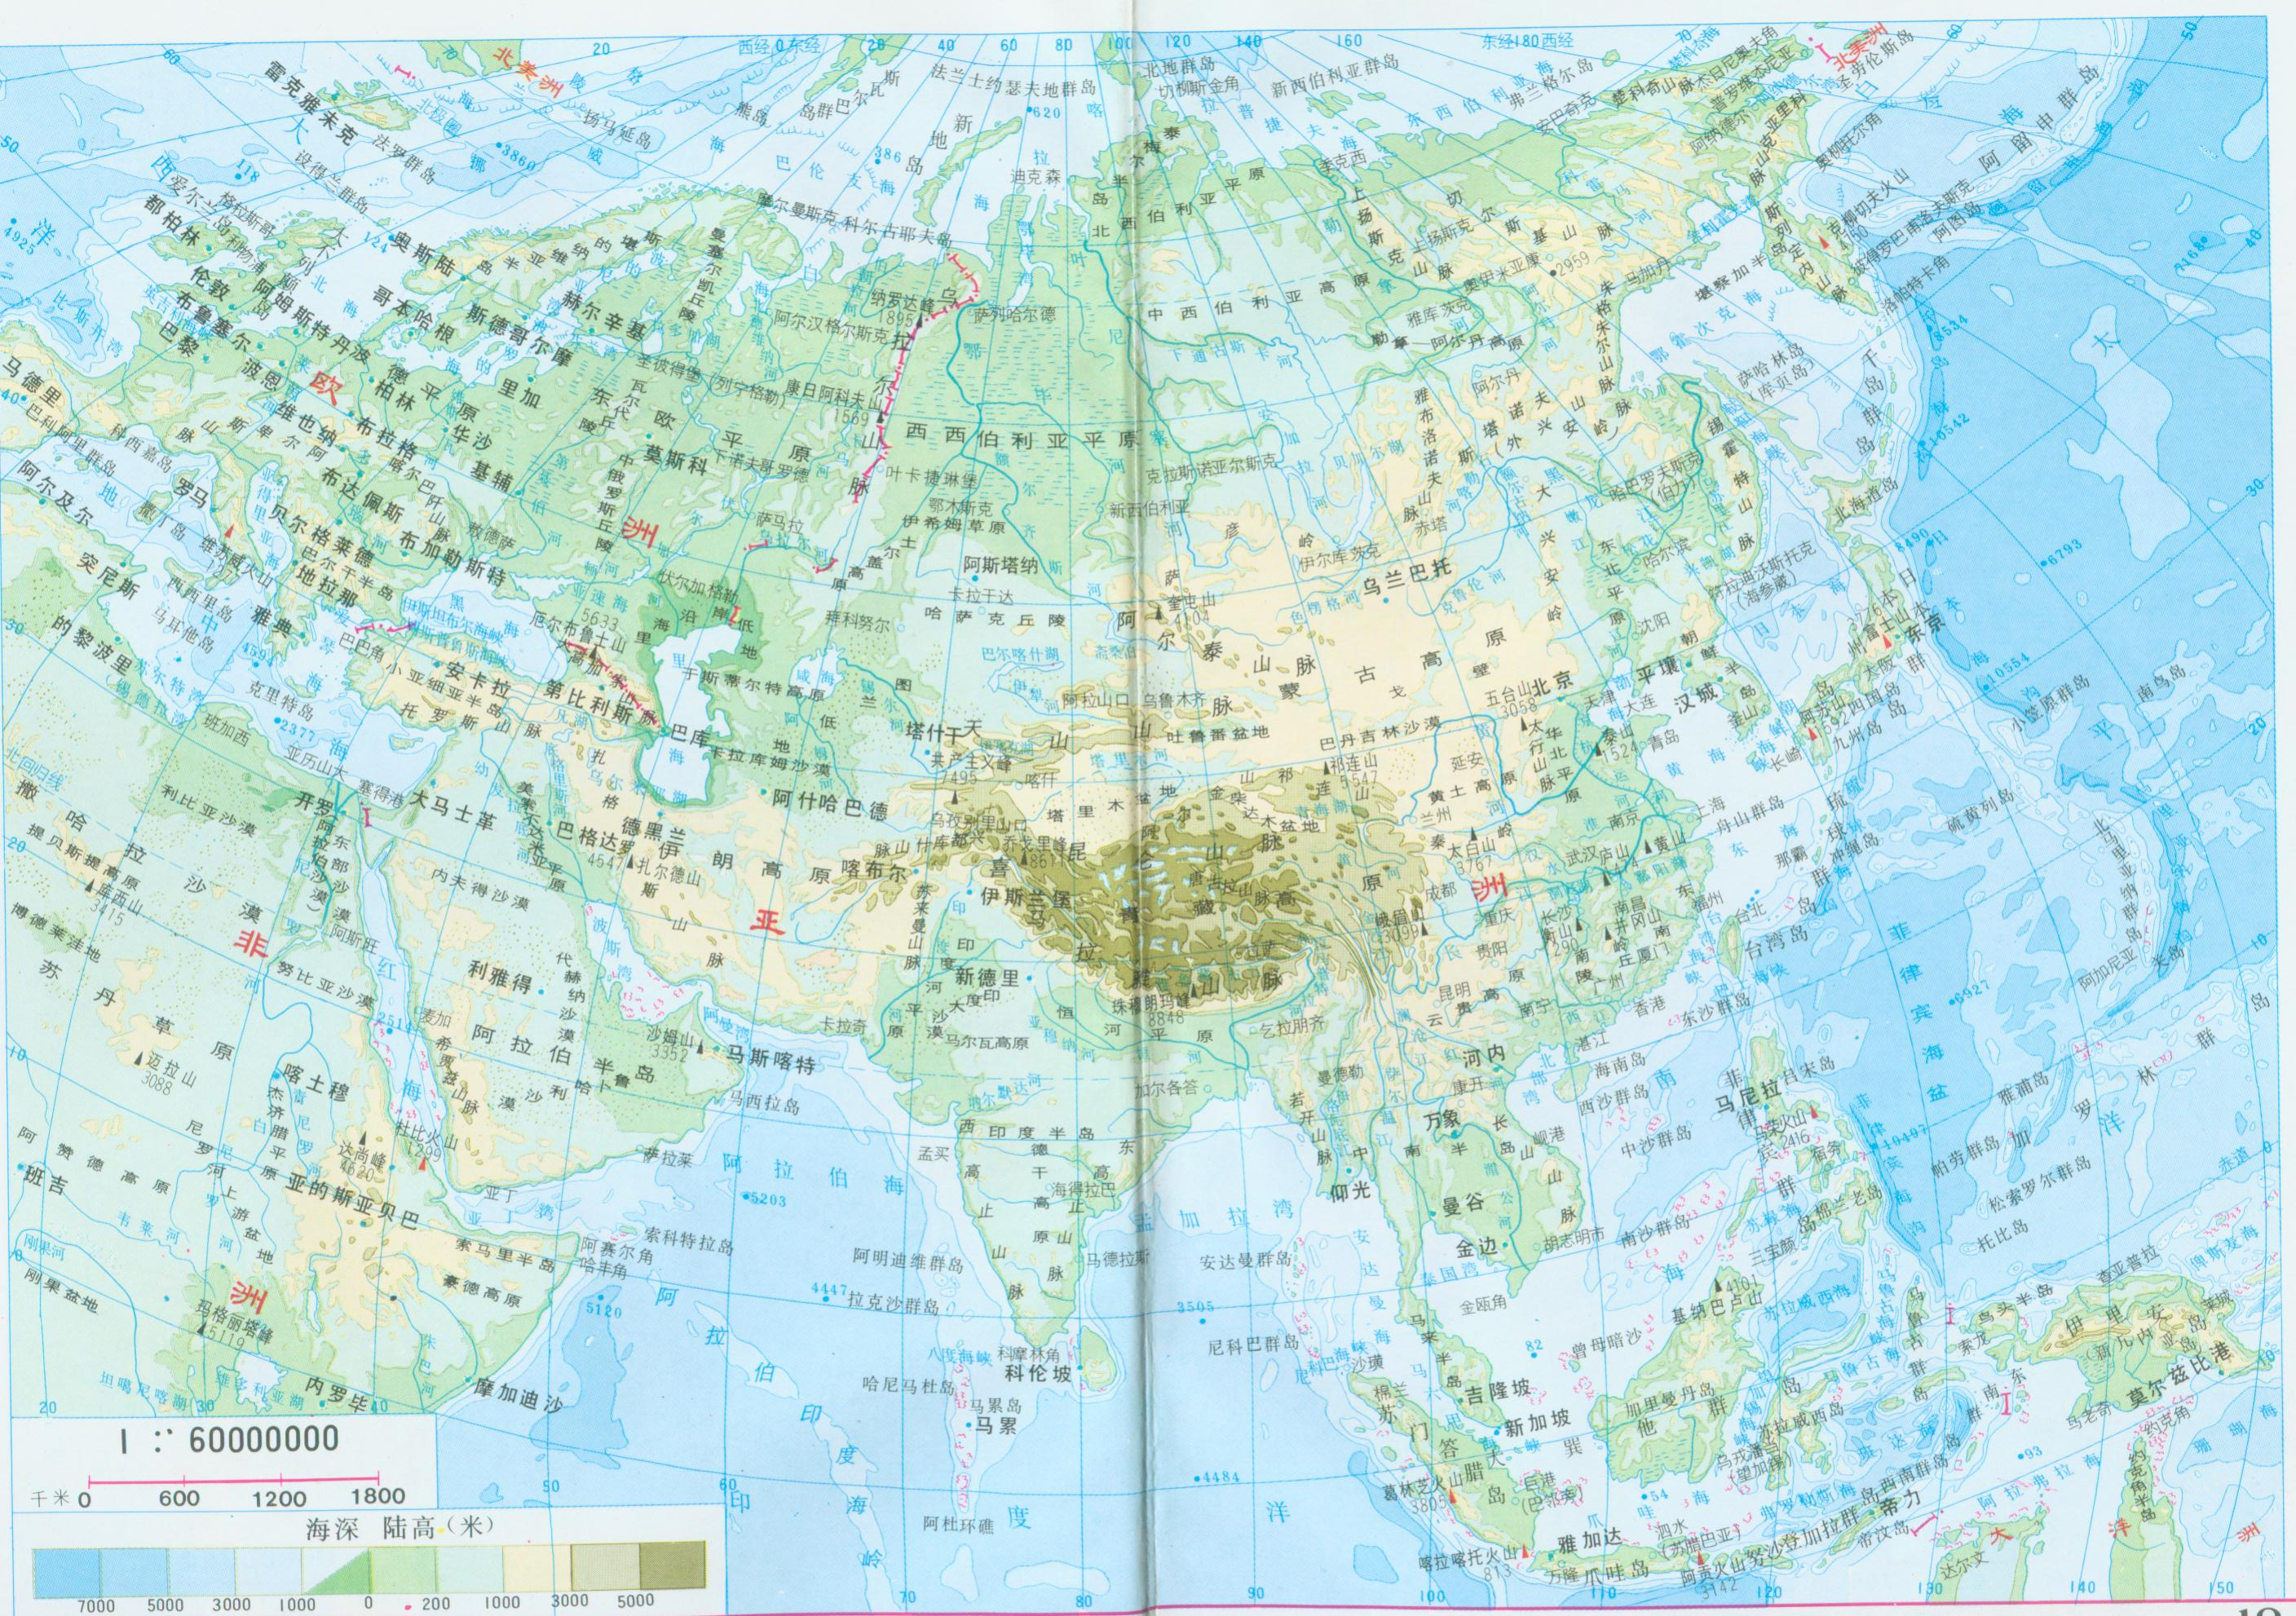 China On Map Of Asia.Large Detailed Physical Map Of Asia In China Asia Large Detailed